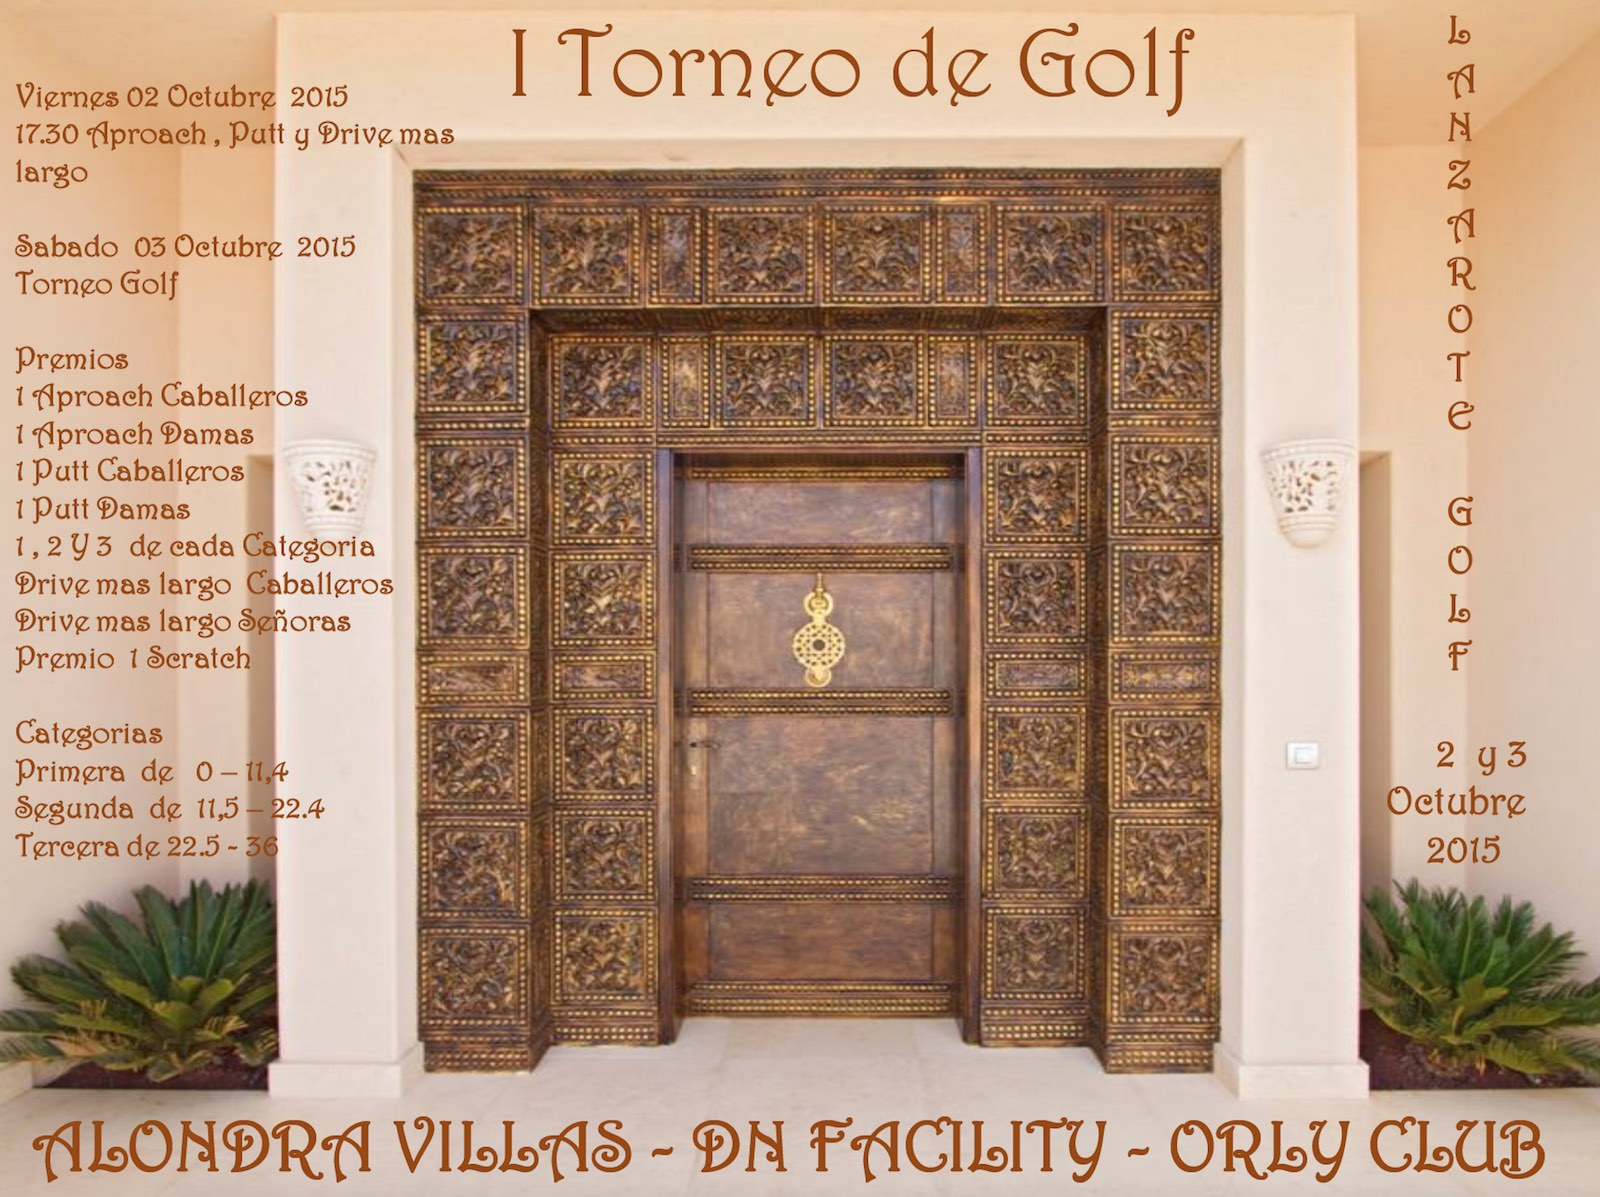 I Torneo de Golf Alondra Villas